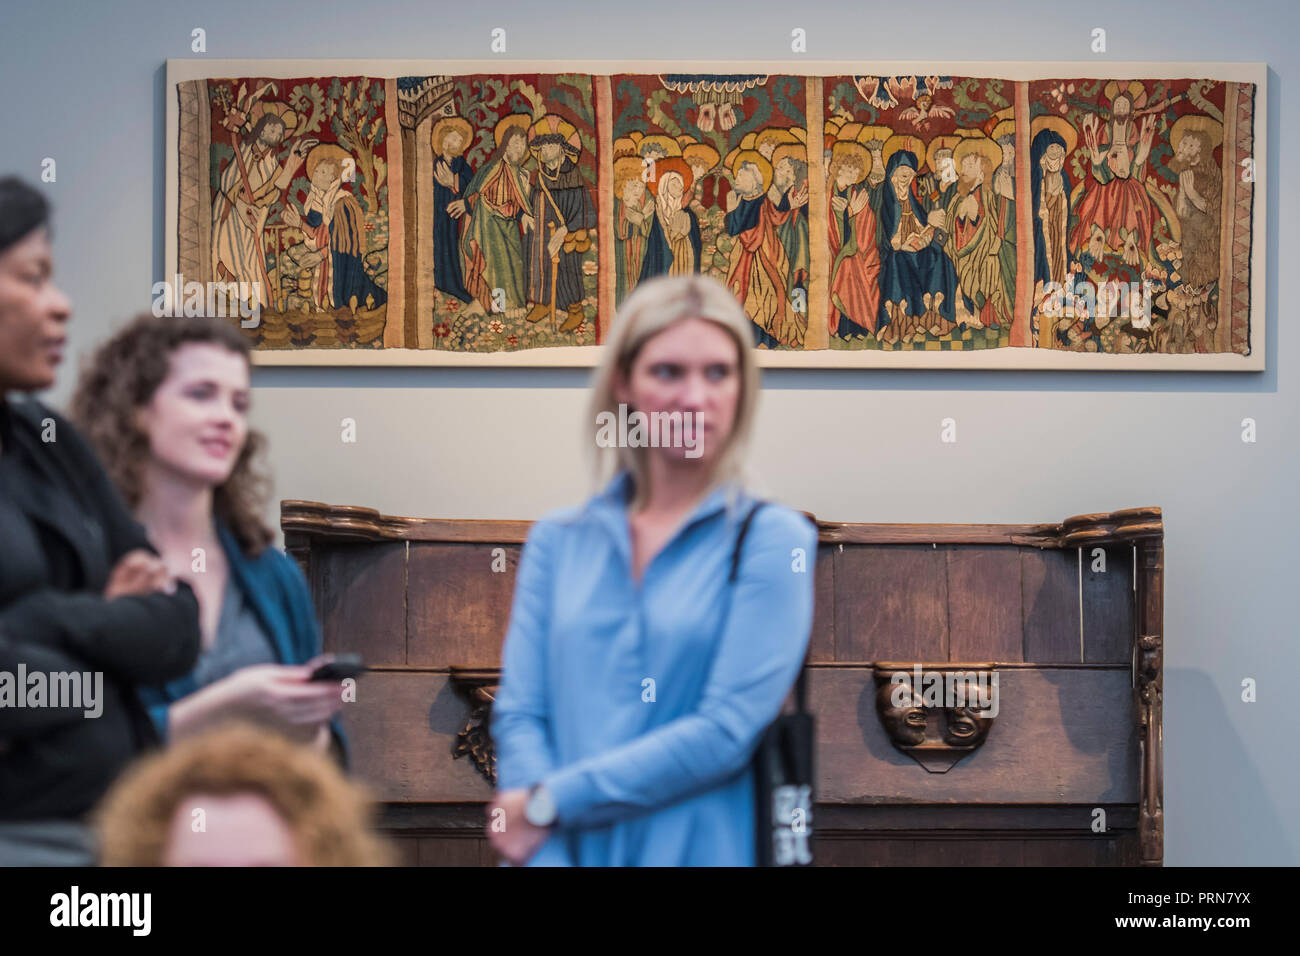 London, UK. 3rd Oct 2018. 15th Centuary Eichstatt tapestry in Sam Foggs - Frieze Masters London 2018, Regents Park, London. It covers several thousand years of art from 130 of the world's leading modern and historical galleries. The vetted artworks spanning antiquities, Asian art, ethnographic art, illuminated manuscripts, Medieval, modern and post-war, Old Masters and 19th-century, photography and sculpture.  The fair is open to the public 04-07 October. Credit: Guy Bell/Alamy Live News Stock Photo